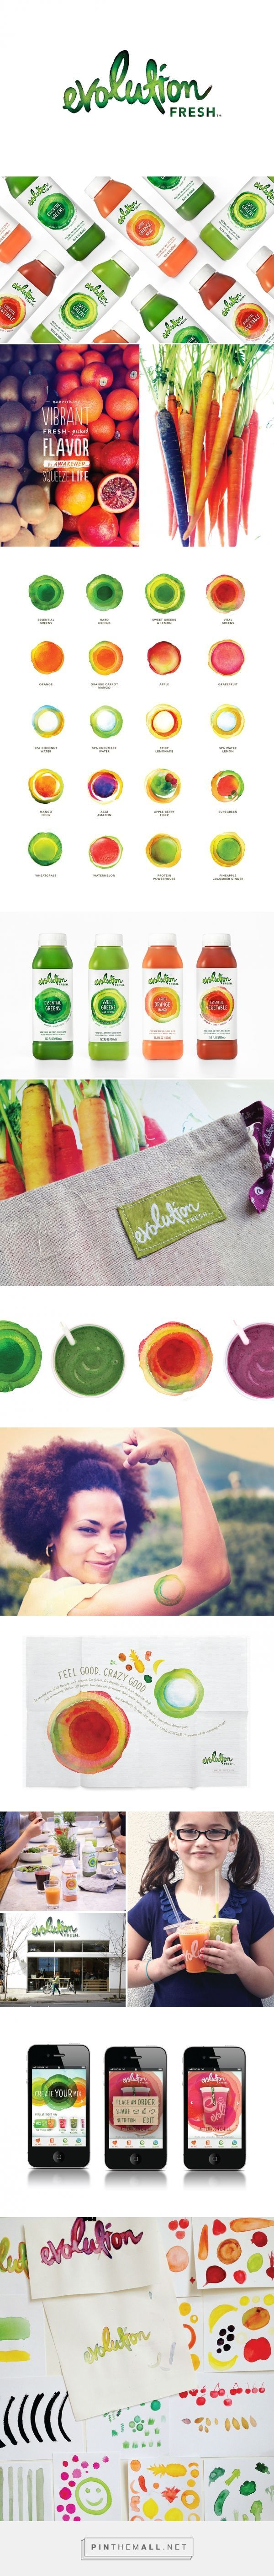 Evolution Fresh juice packaging design by Hornall Anderson (USA) - www.packagingofth...